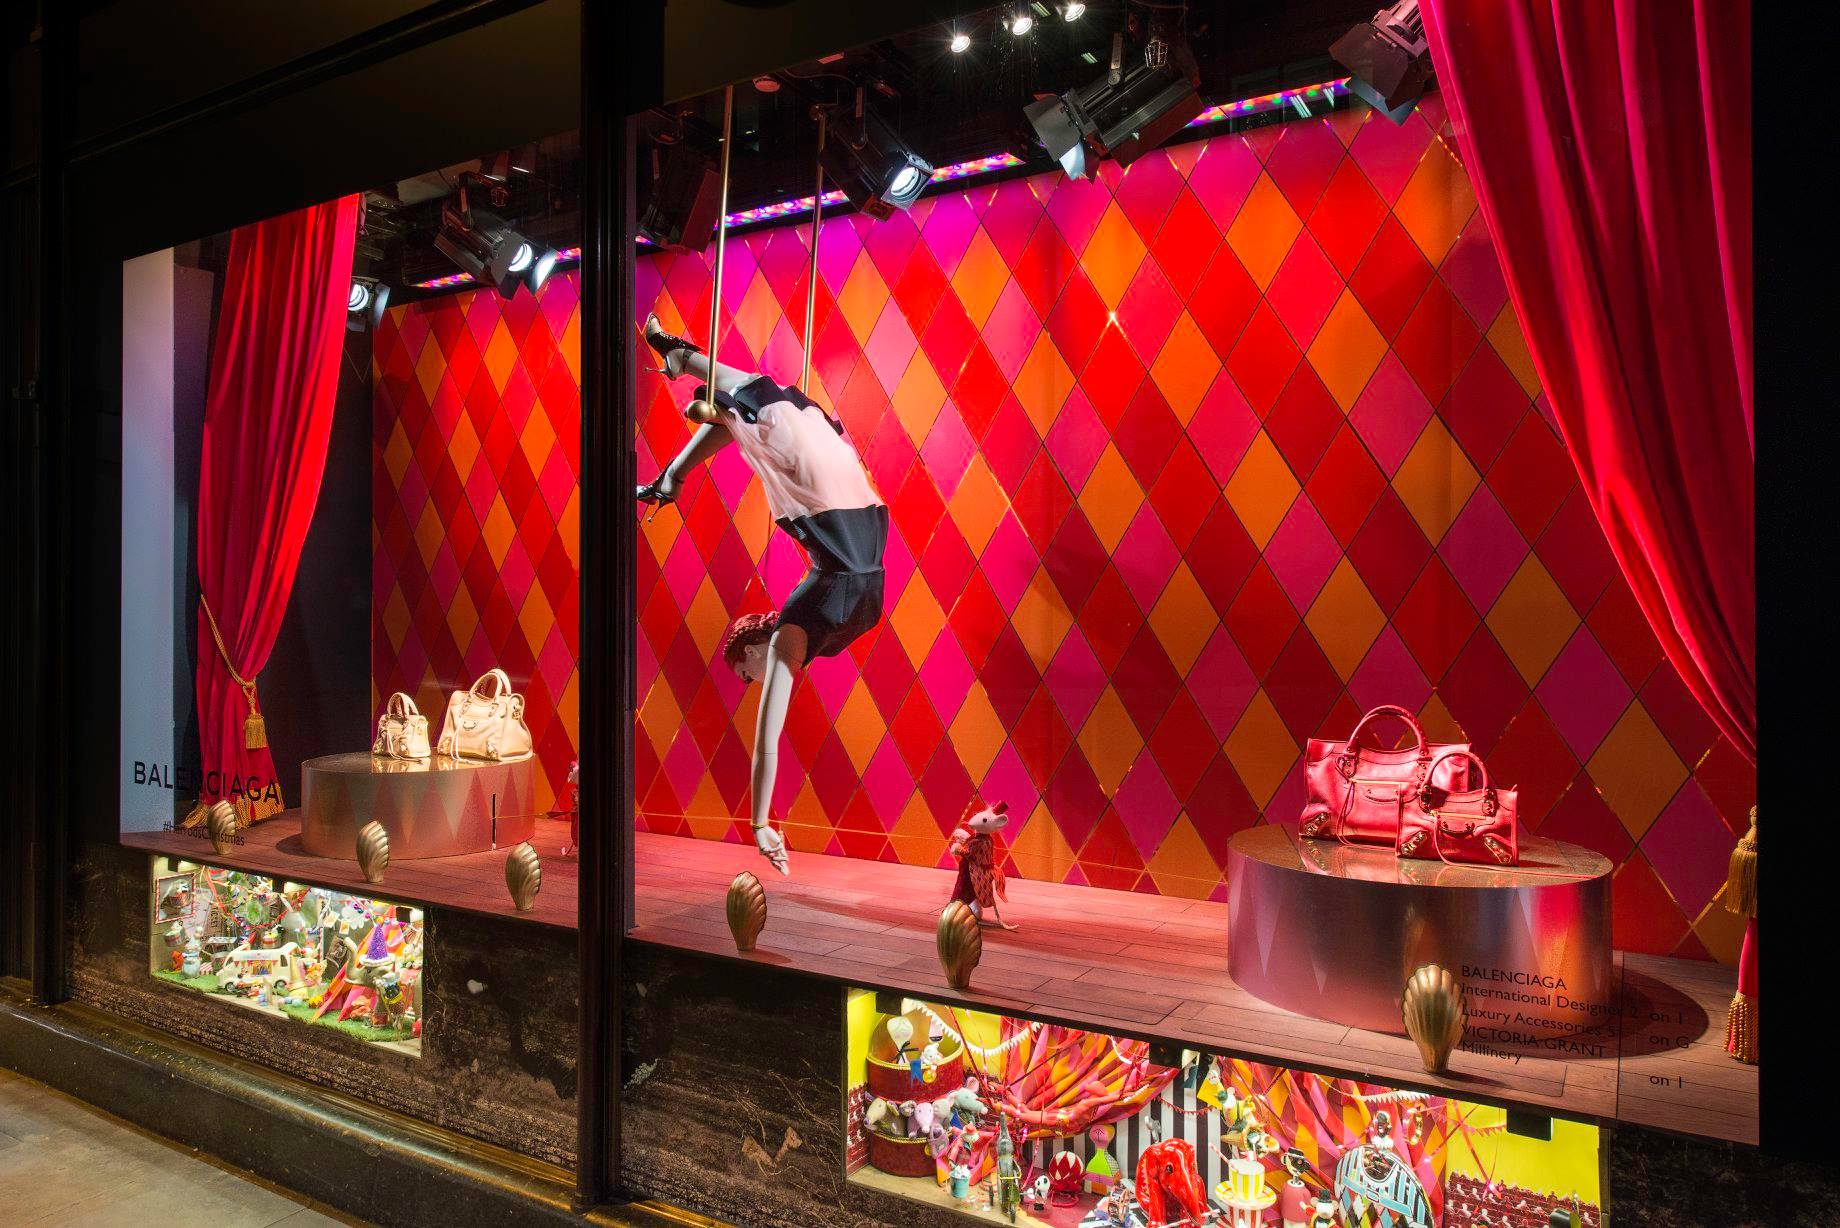 #BA1154 Christmas Windows: 10 Of The Best From London And New York  6429 décoration noel harrods 1840x1228 px @ aertt.com